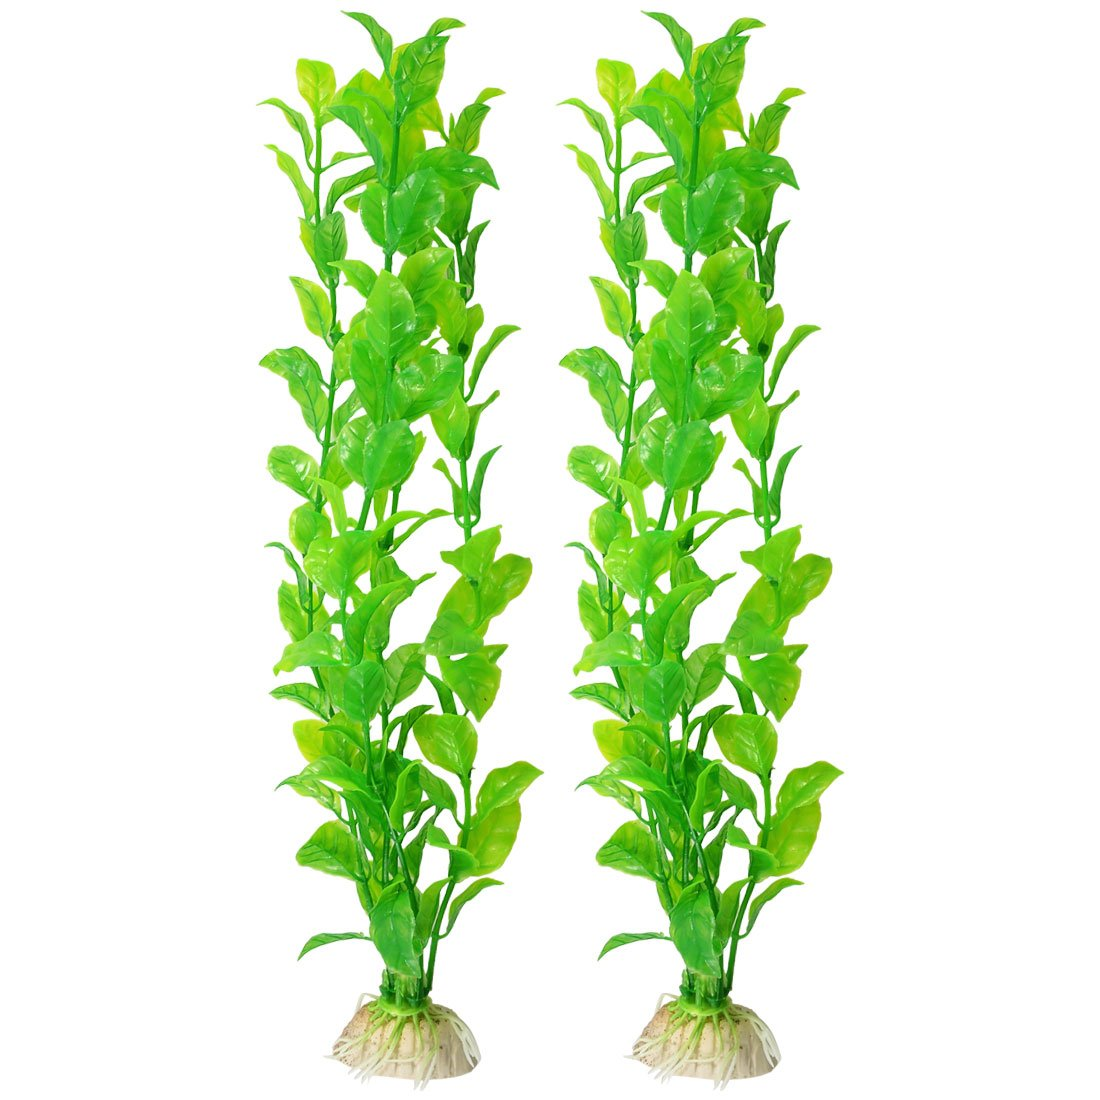 Aquarium fish tank price - Boutique 2 Pcs Aquarium Fish Tank Aquascaping Green Plastic Plant 12 2 Tall China